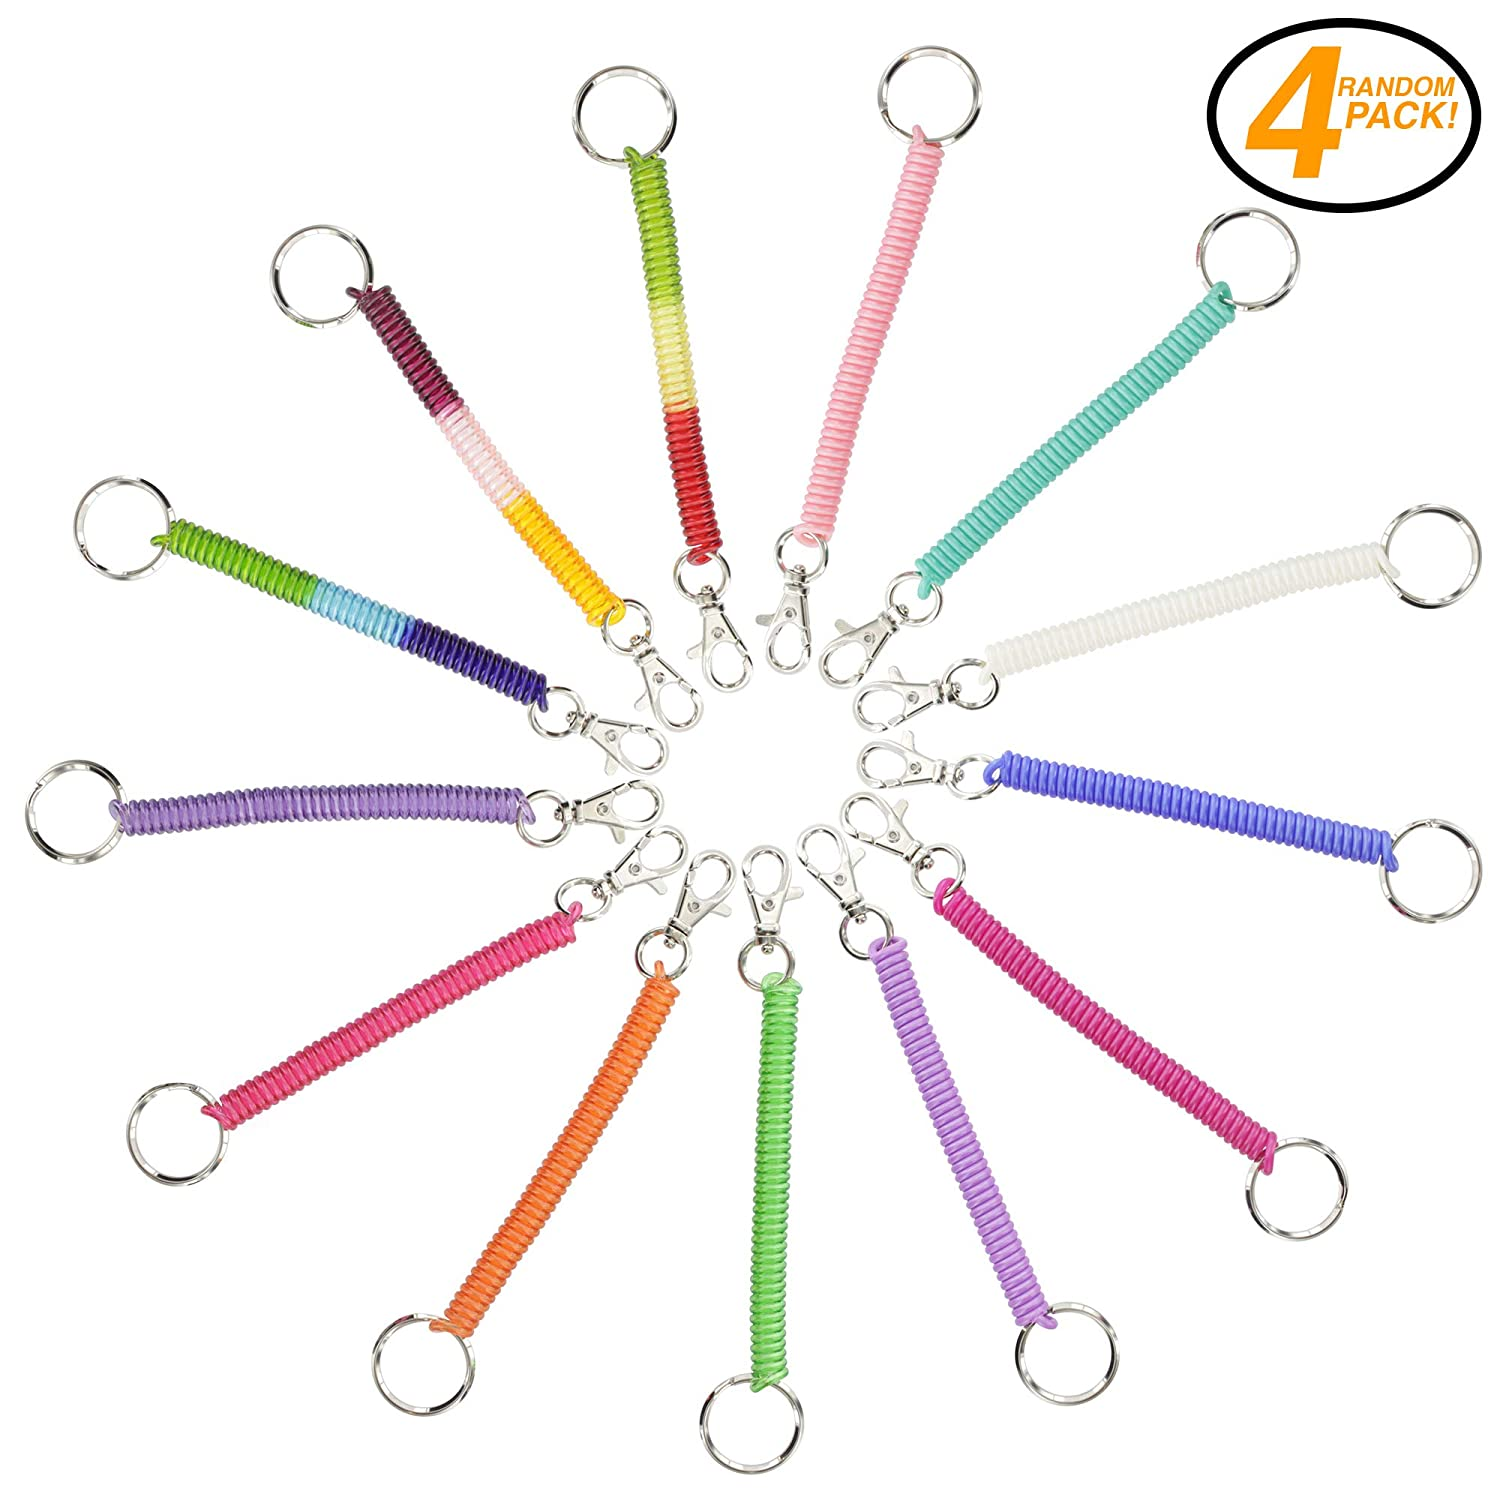 Spiral String Key Chain Keyring Coil Stretch Keychain Hook Retractable Plastic Portachiavi Bambini 2 - 16 anni